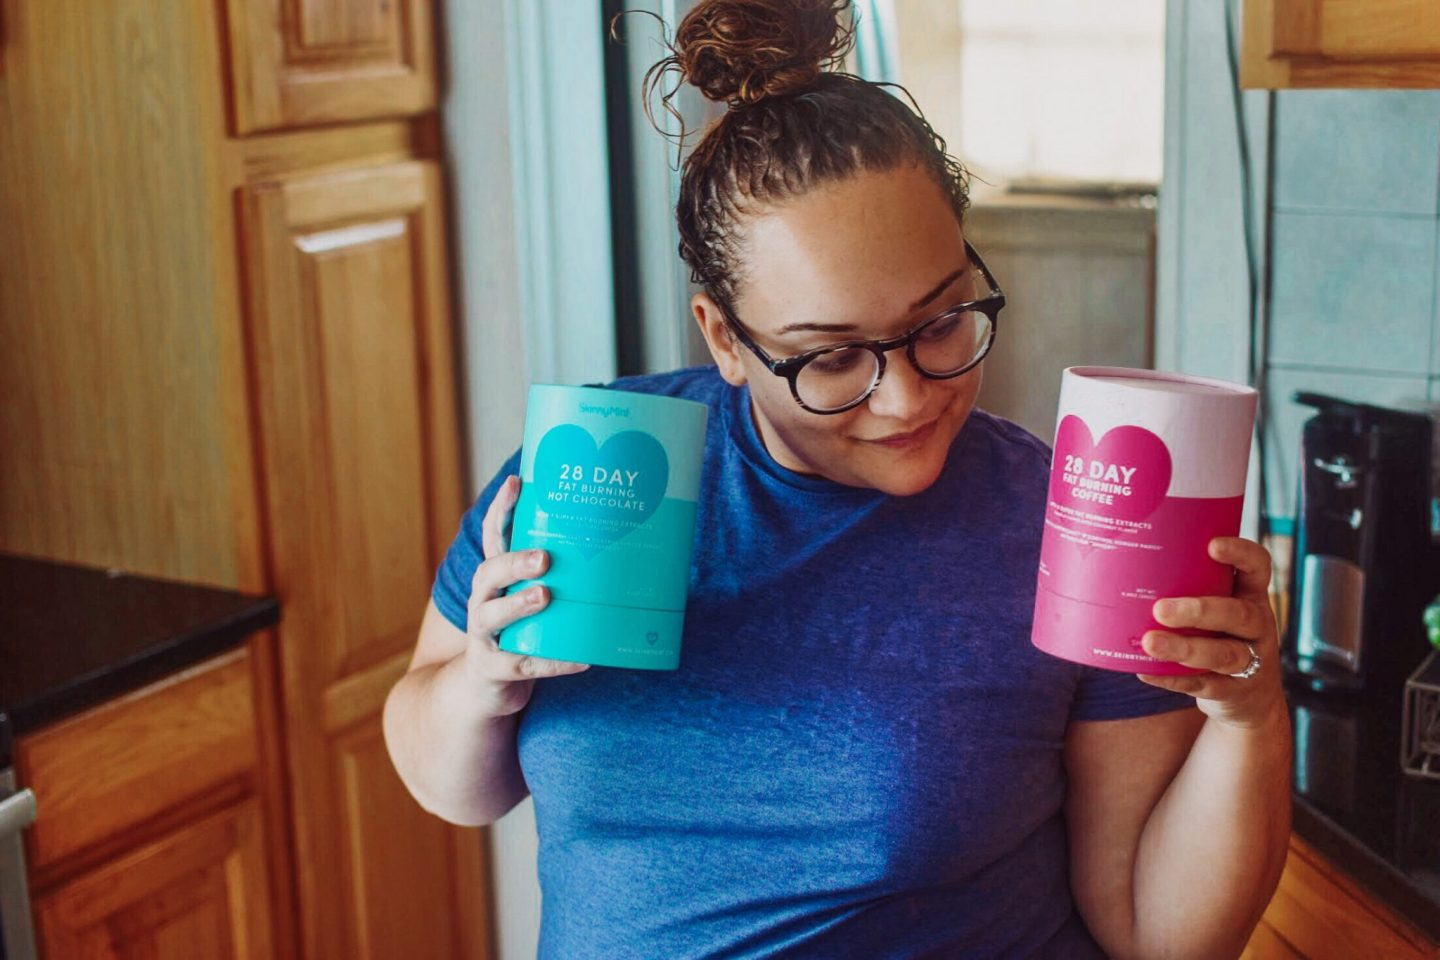 LOSING 8 POUNDS WITH SKINNYMINT'S COFFEE + HOT CHOCOLATE